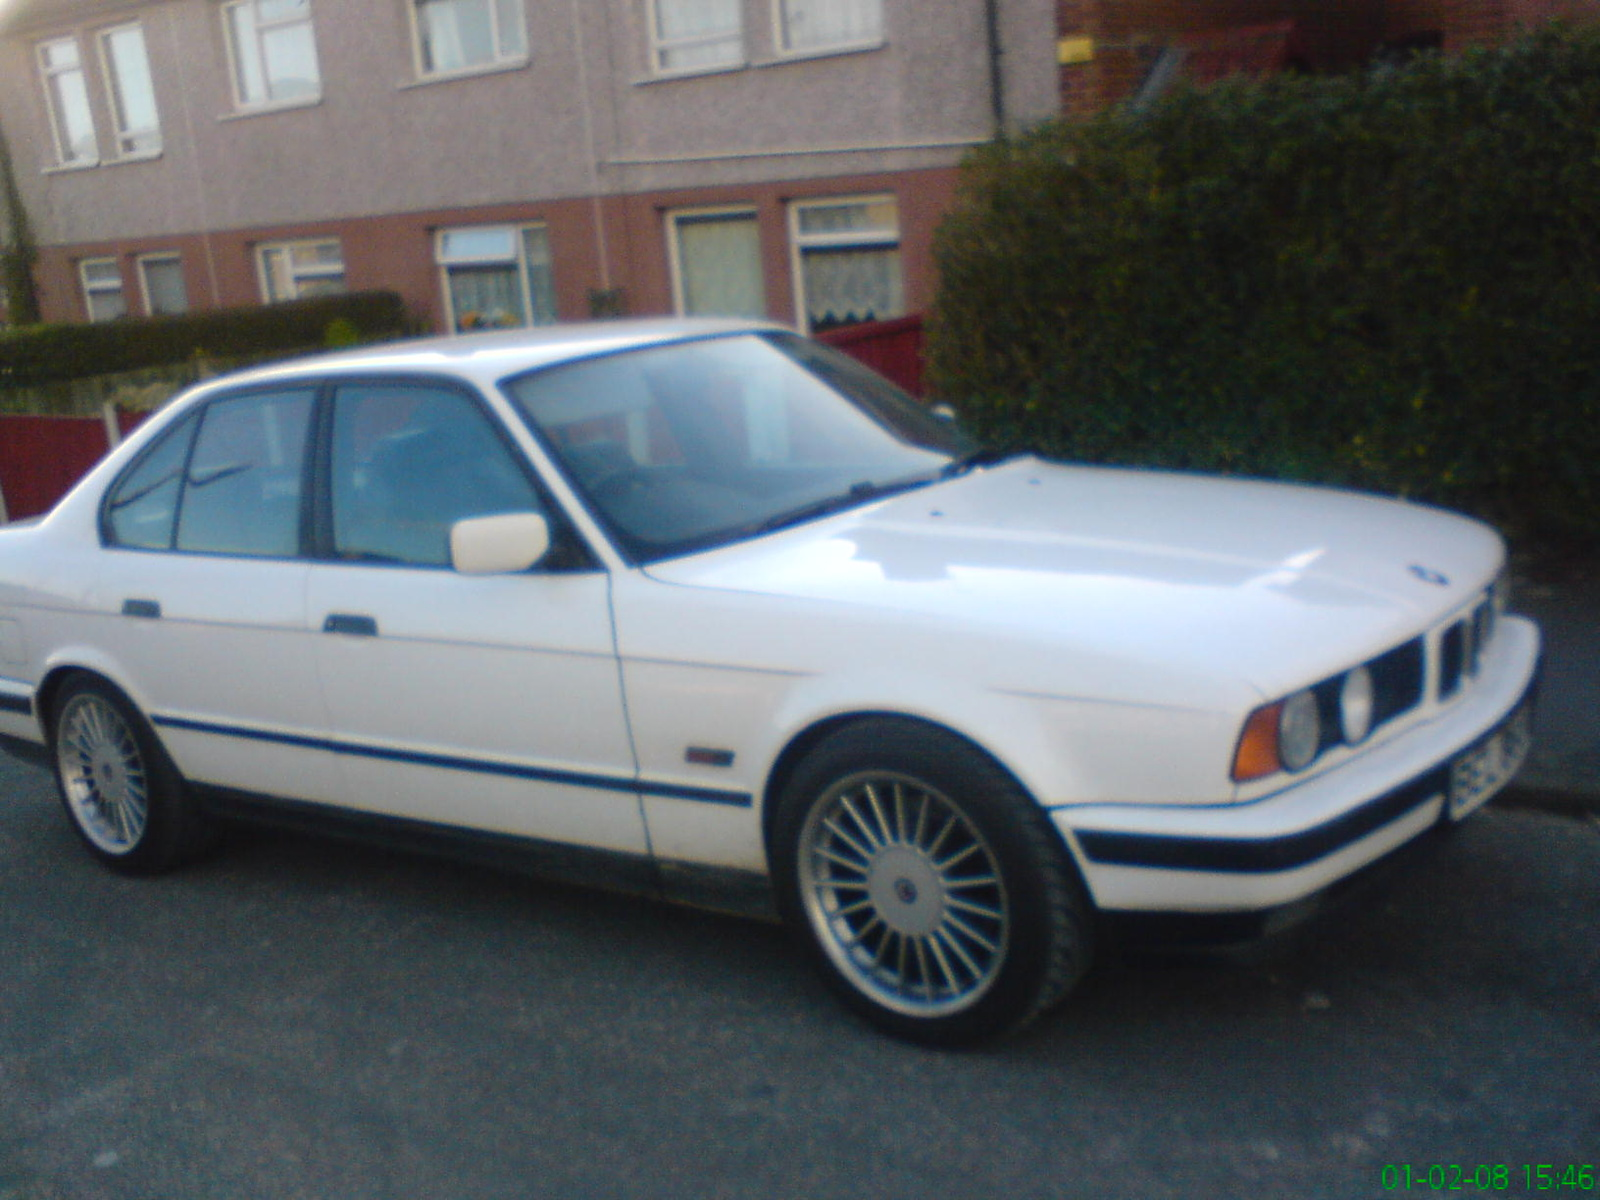 BMW 5 series 540i 1992 photo - 4